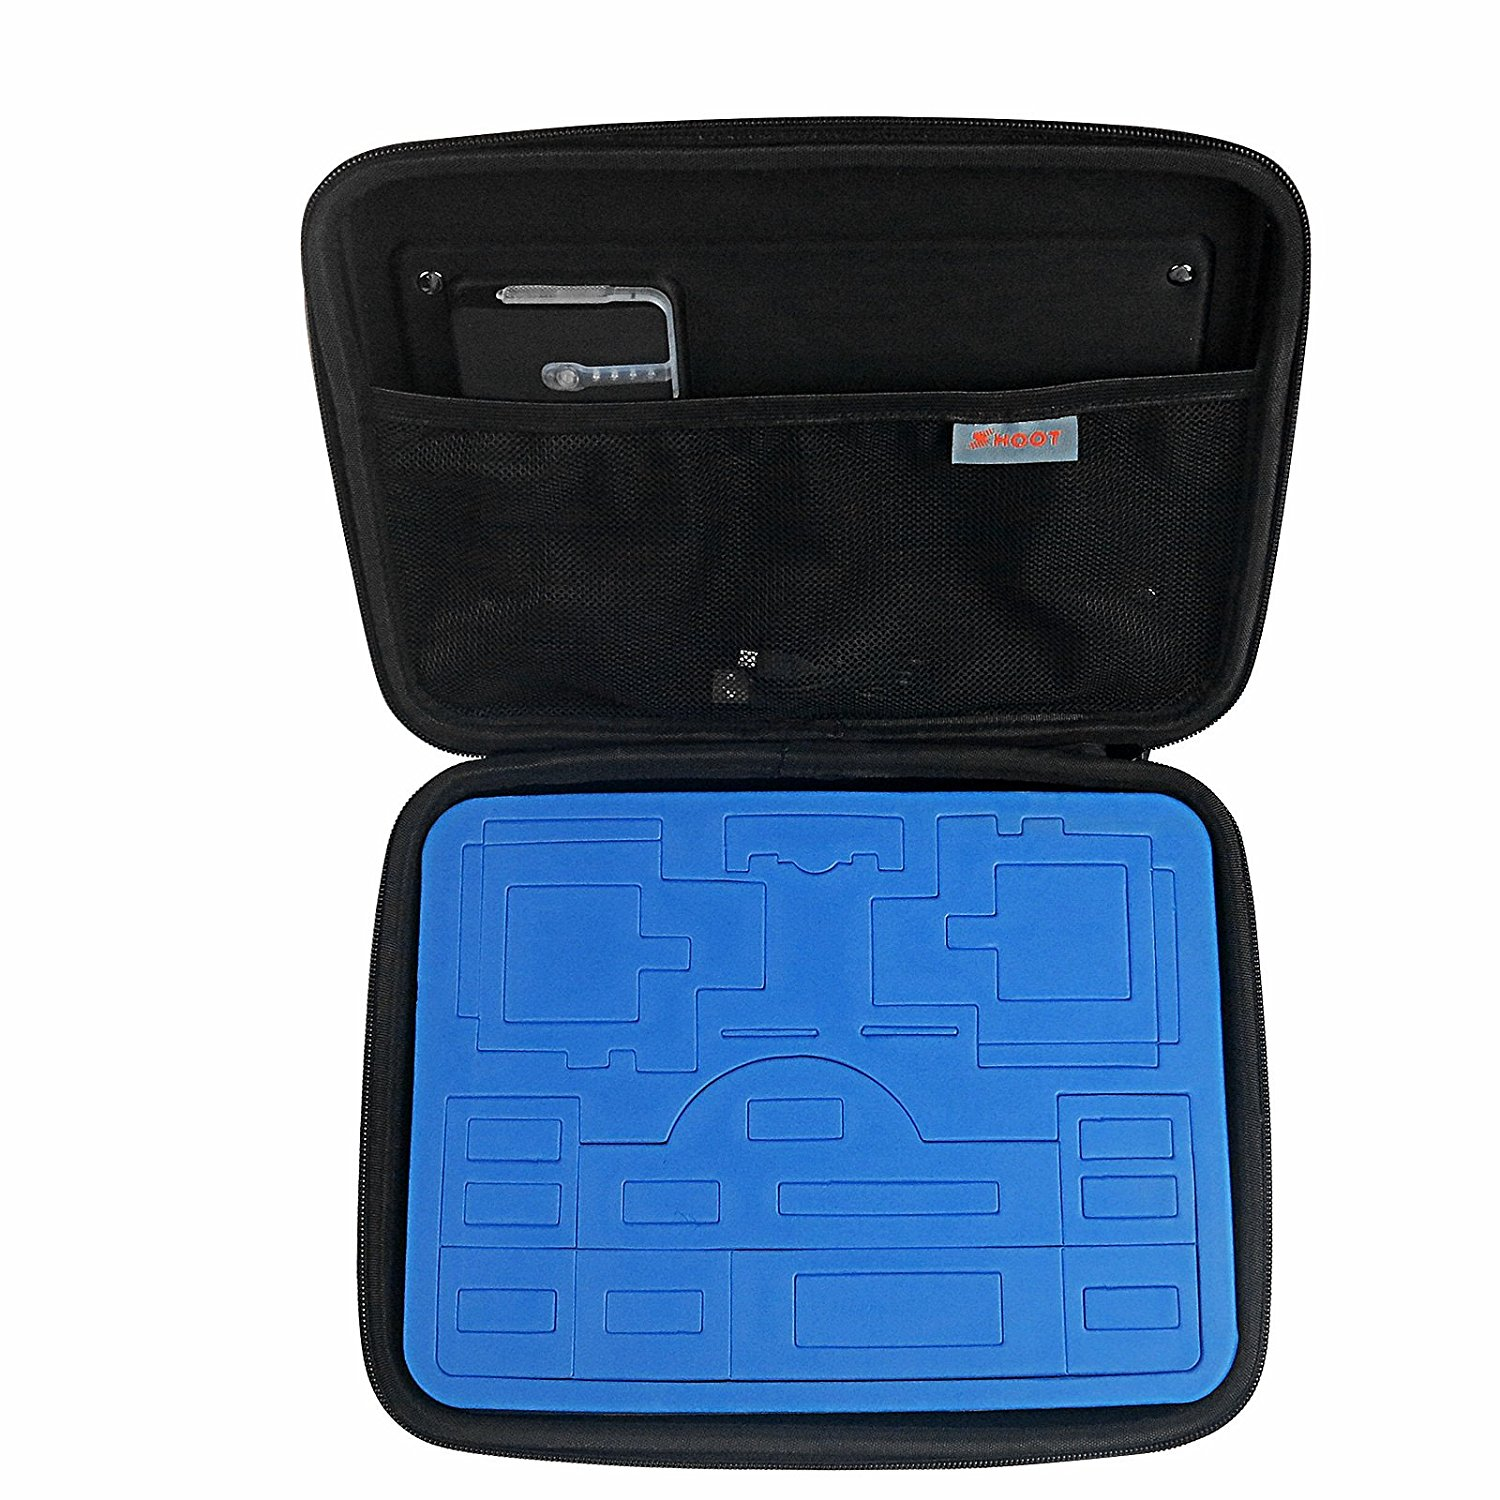 SHOOT Solar Power Charging Solar Storage Bag Case for GoPro 5/4/3+/3 Action Cameras and All Android Mobilephone